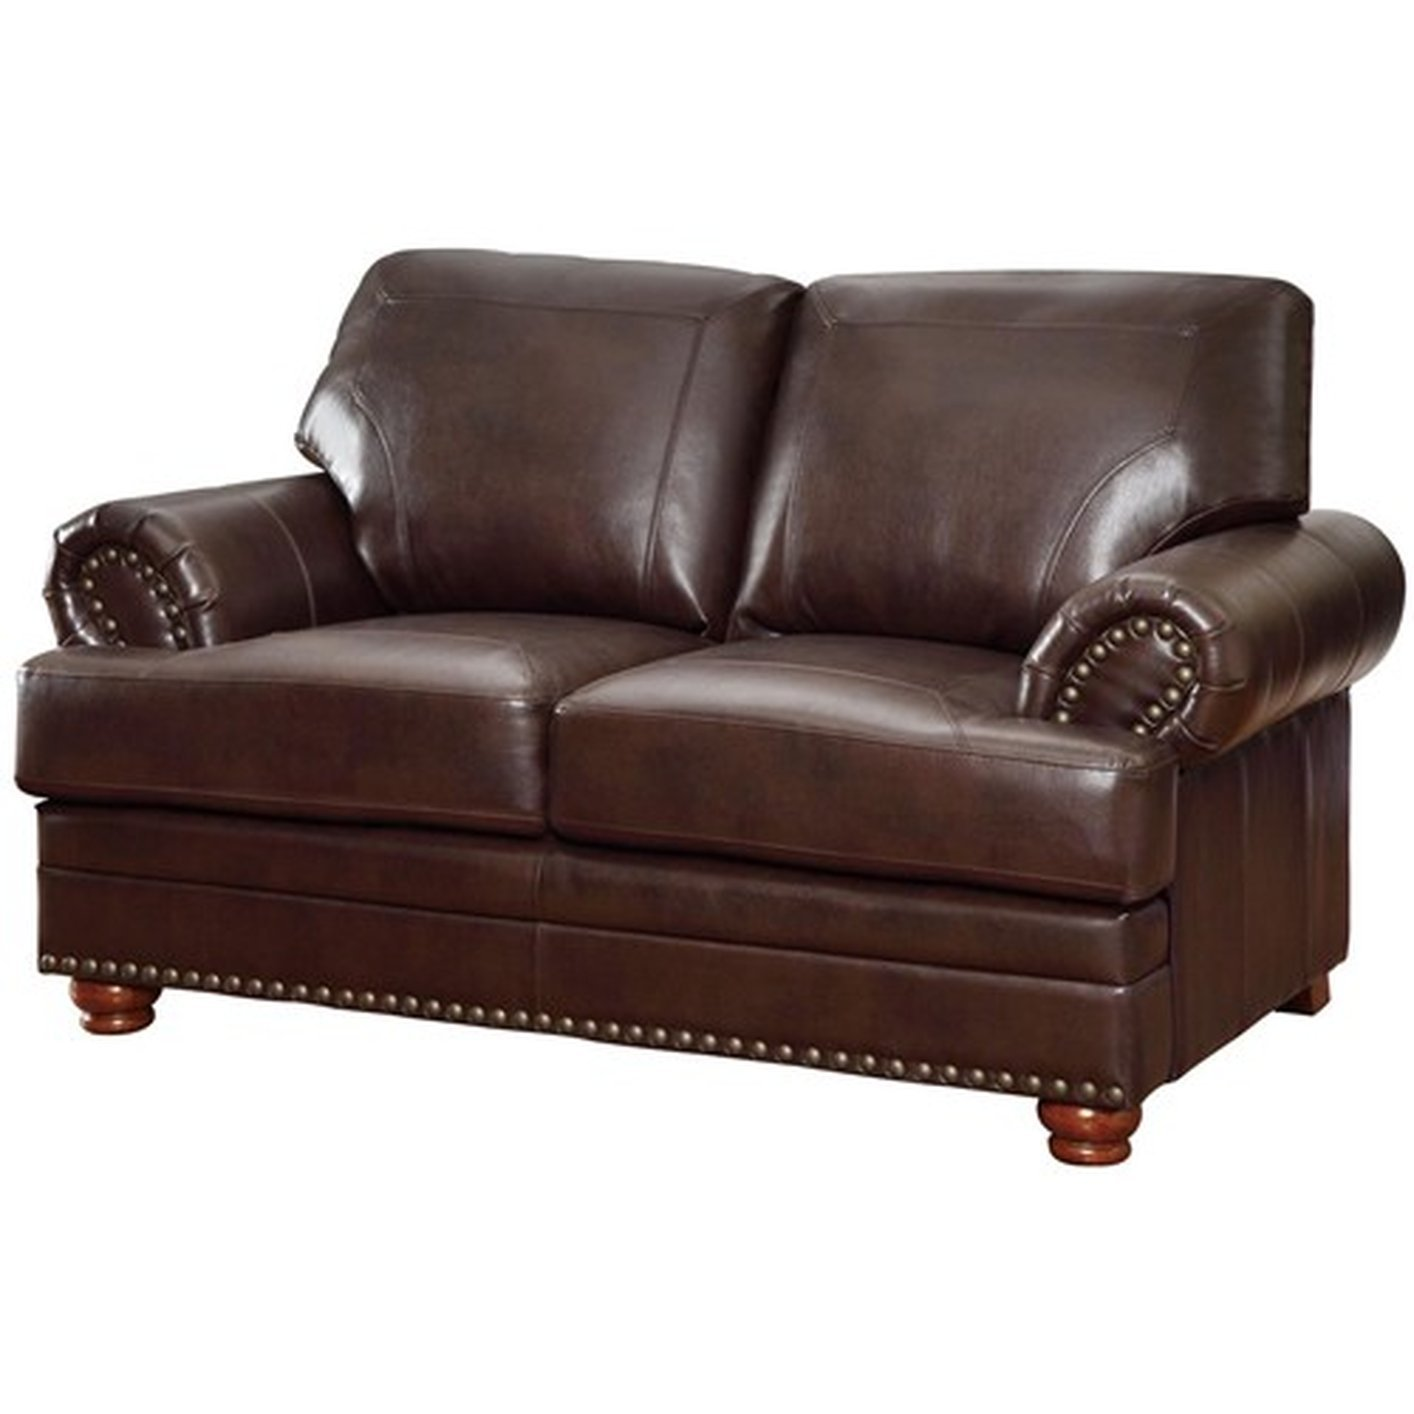 Coaster Colton 504412 Brown Leather Loveseat Steal A Sofa Furniture Outlet Los Angeles Ca